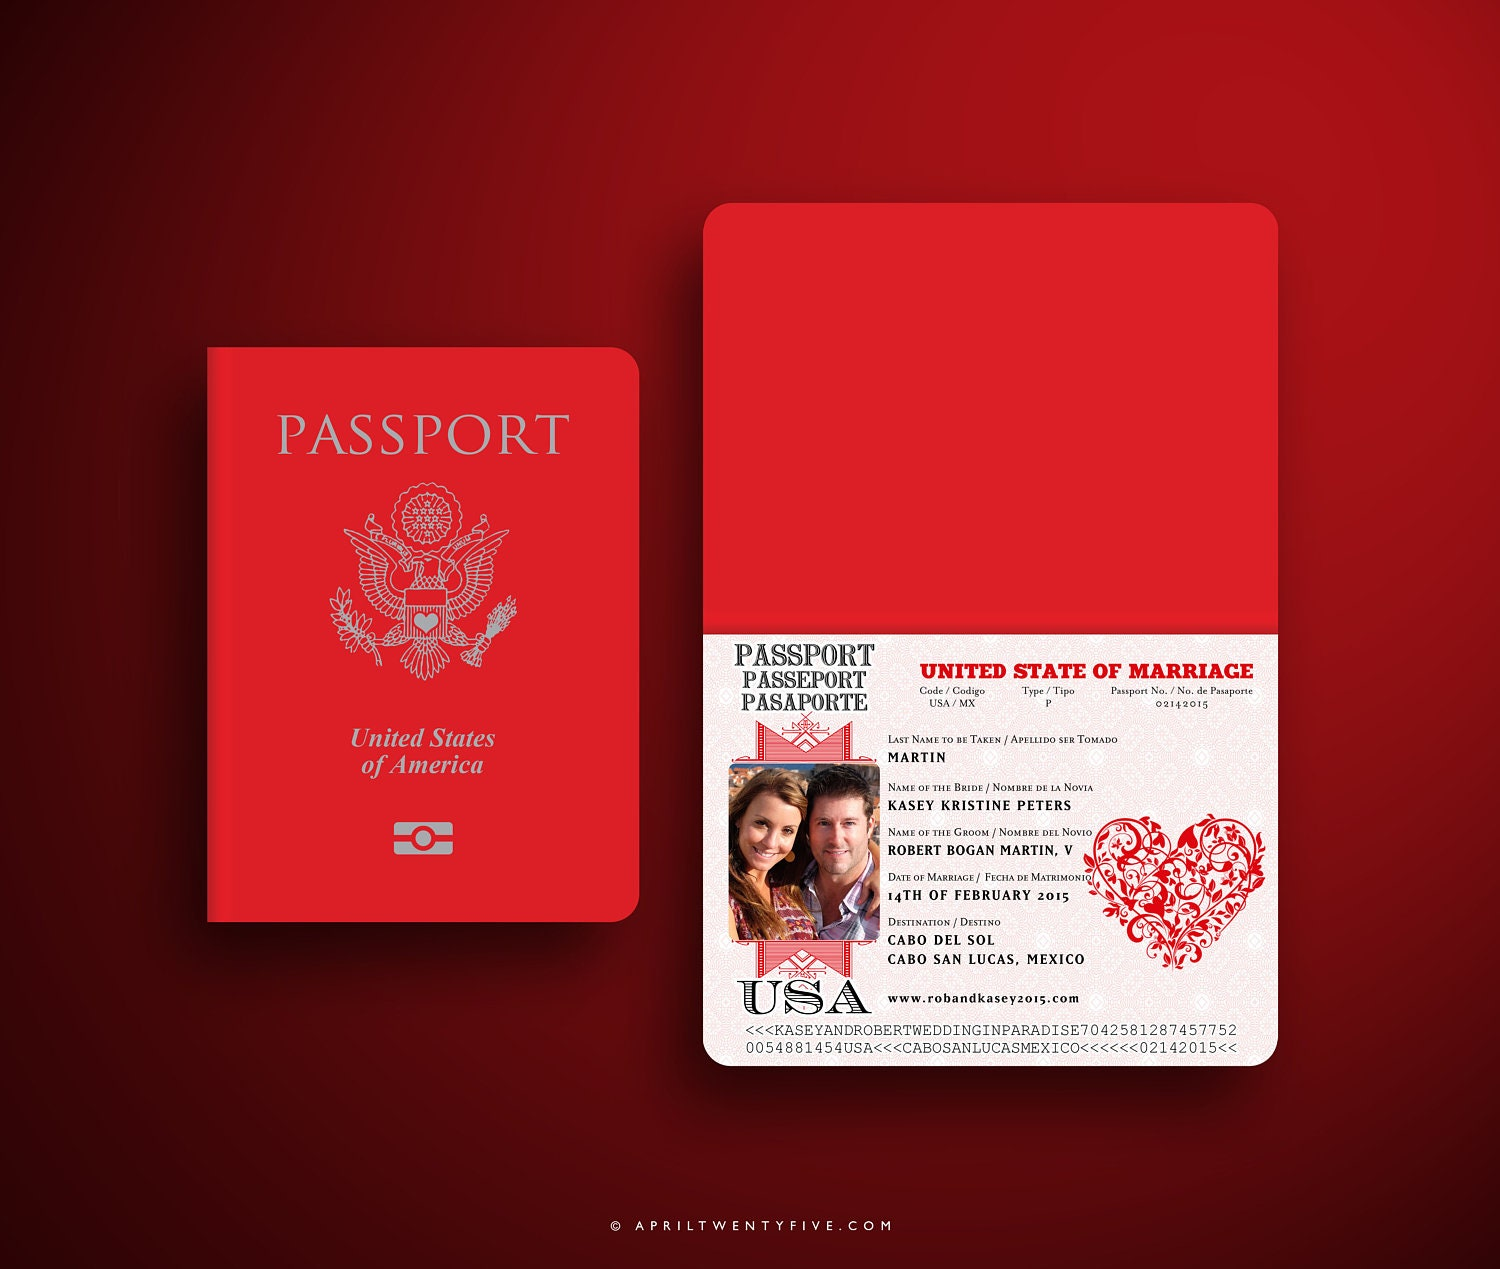 KASEY Red and White Valentine Embossed Wedding Passport and | Etsy